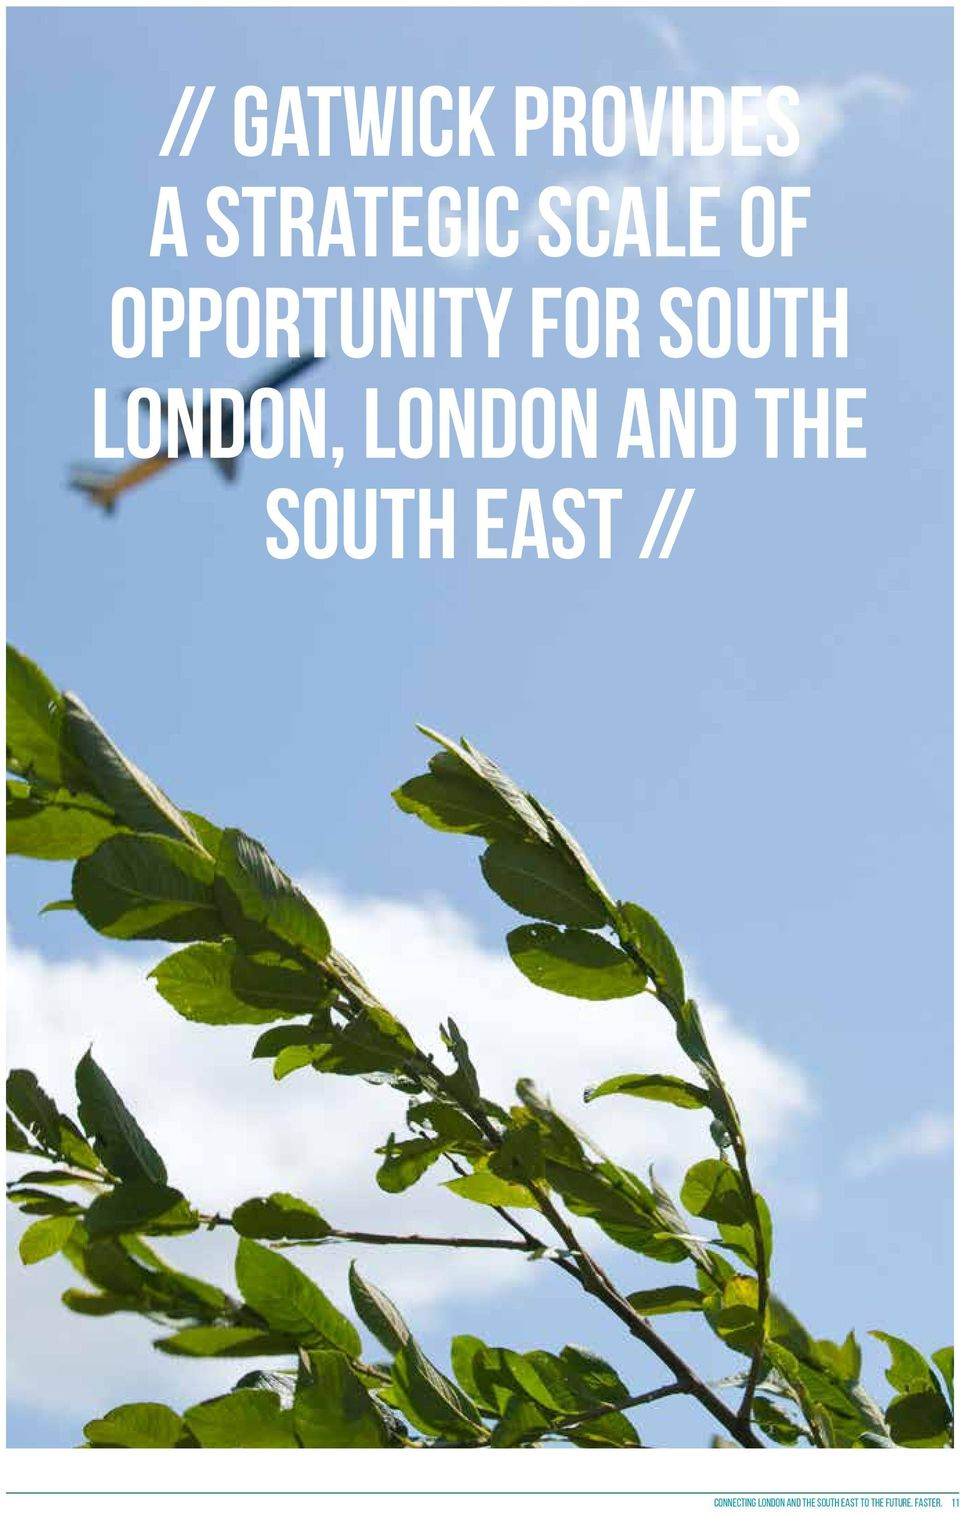 the South East // Connecting London and